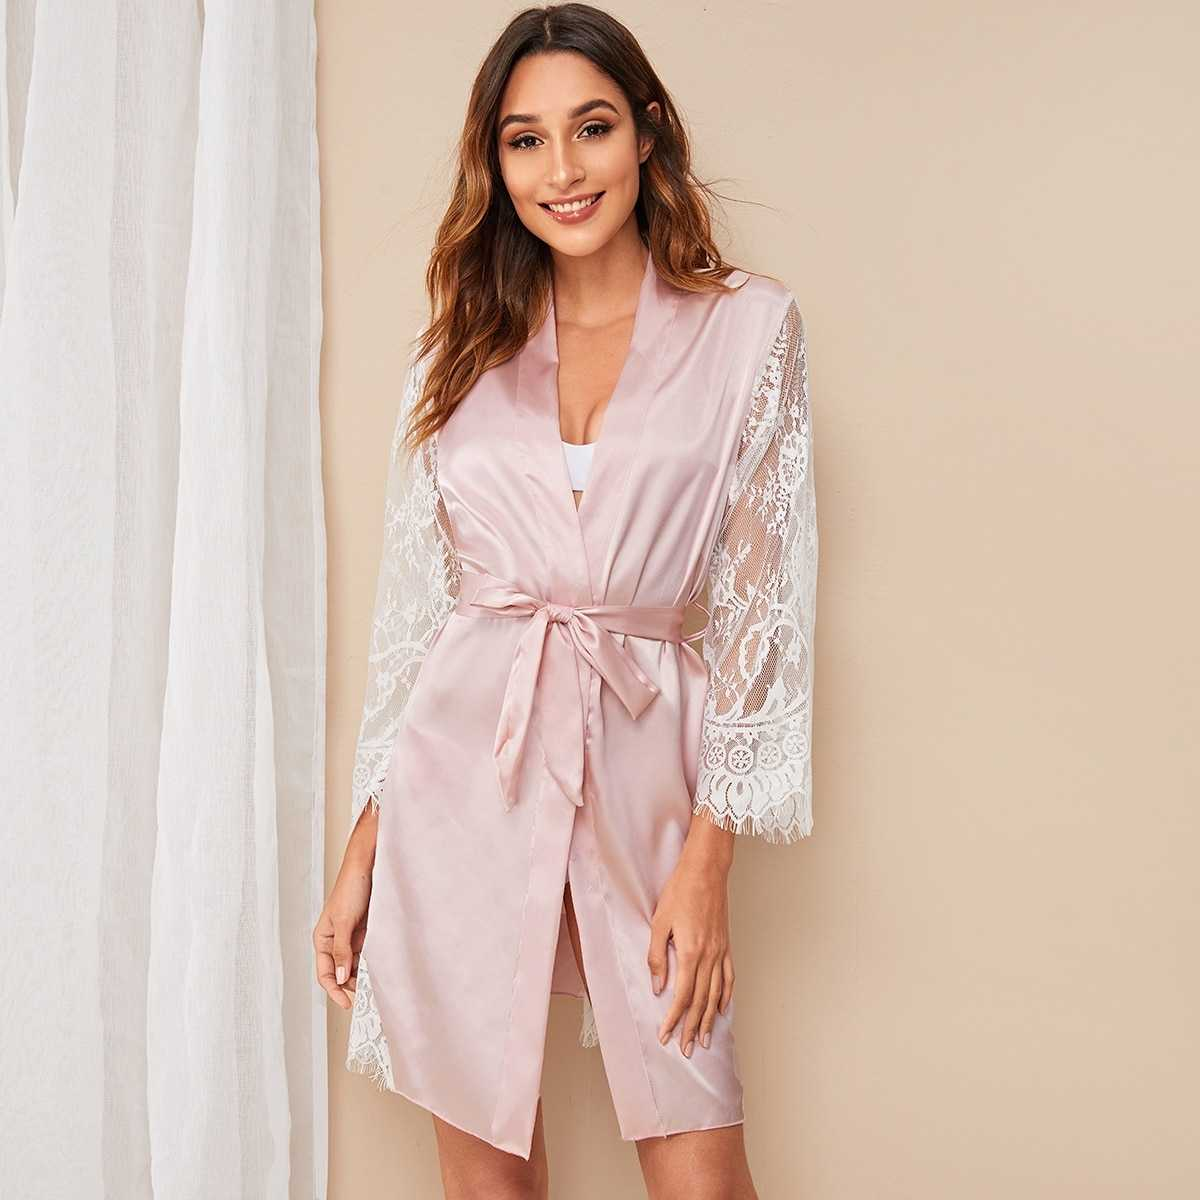 Floral Lace Satin Belted Robe in Pink by ROMWE on GOOFASH